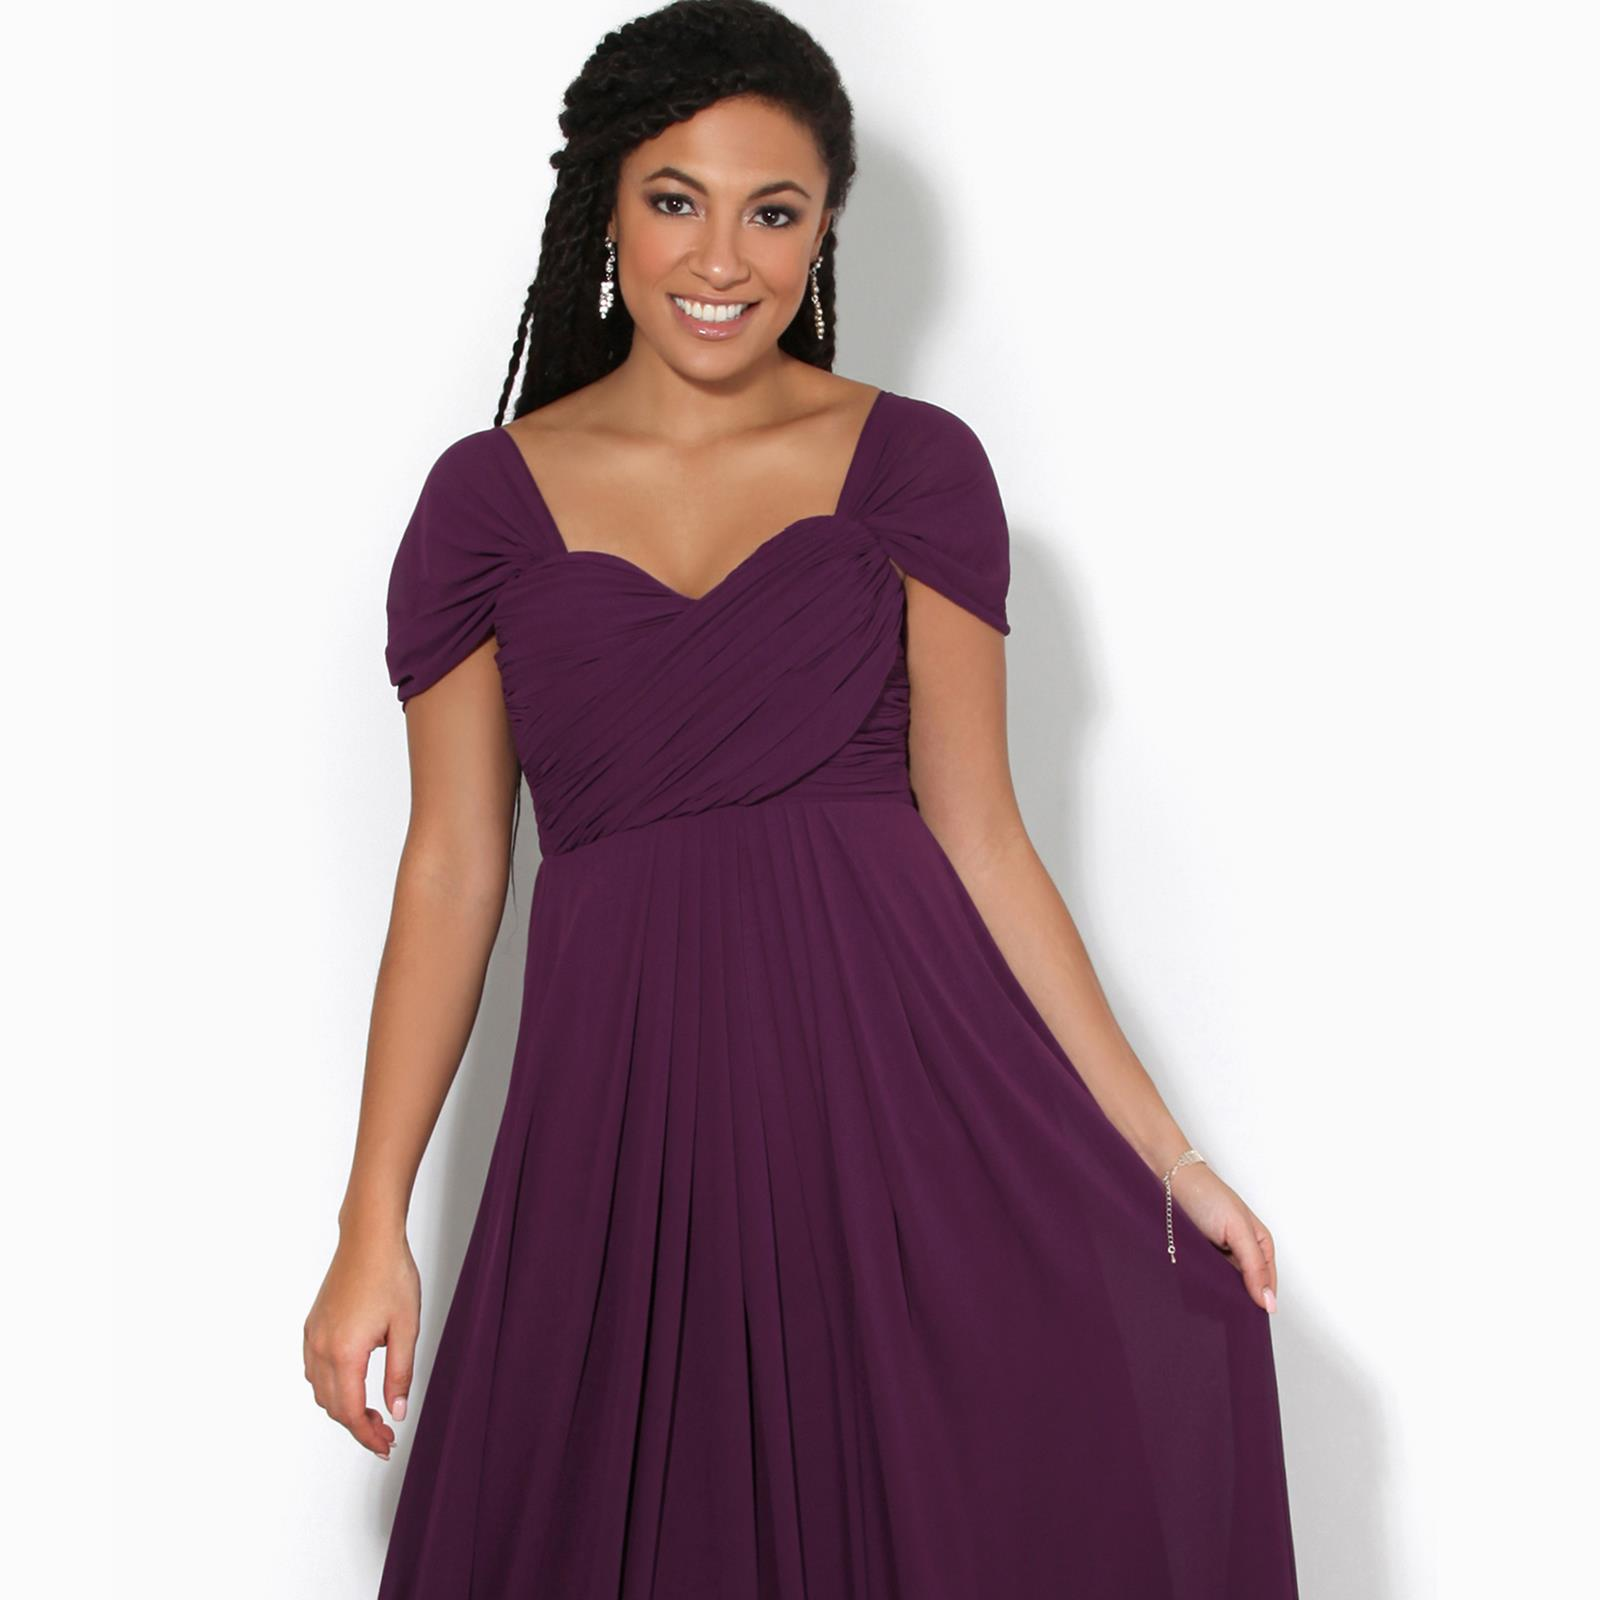 Womens-Formal-Evening-Wedding-Maxi-Prom-Dress-Long-On-Off-Shoulder-Ball-Gown thumbnail 11